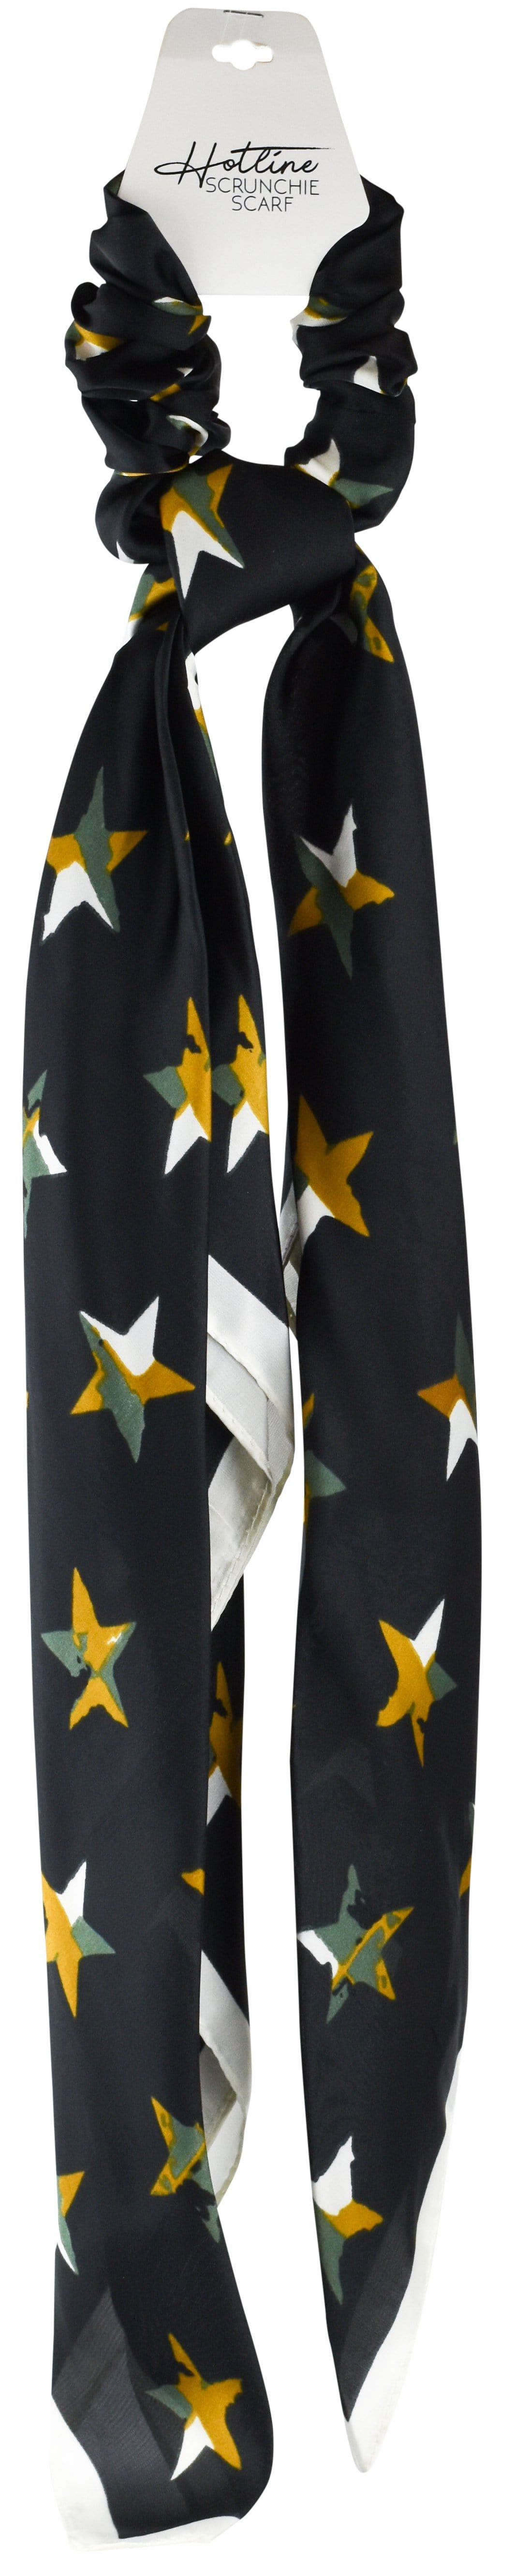 Black Camo Star Scrunchie Scarf